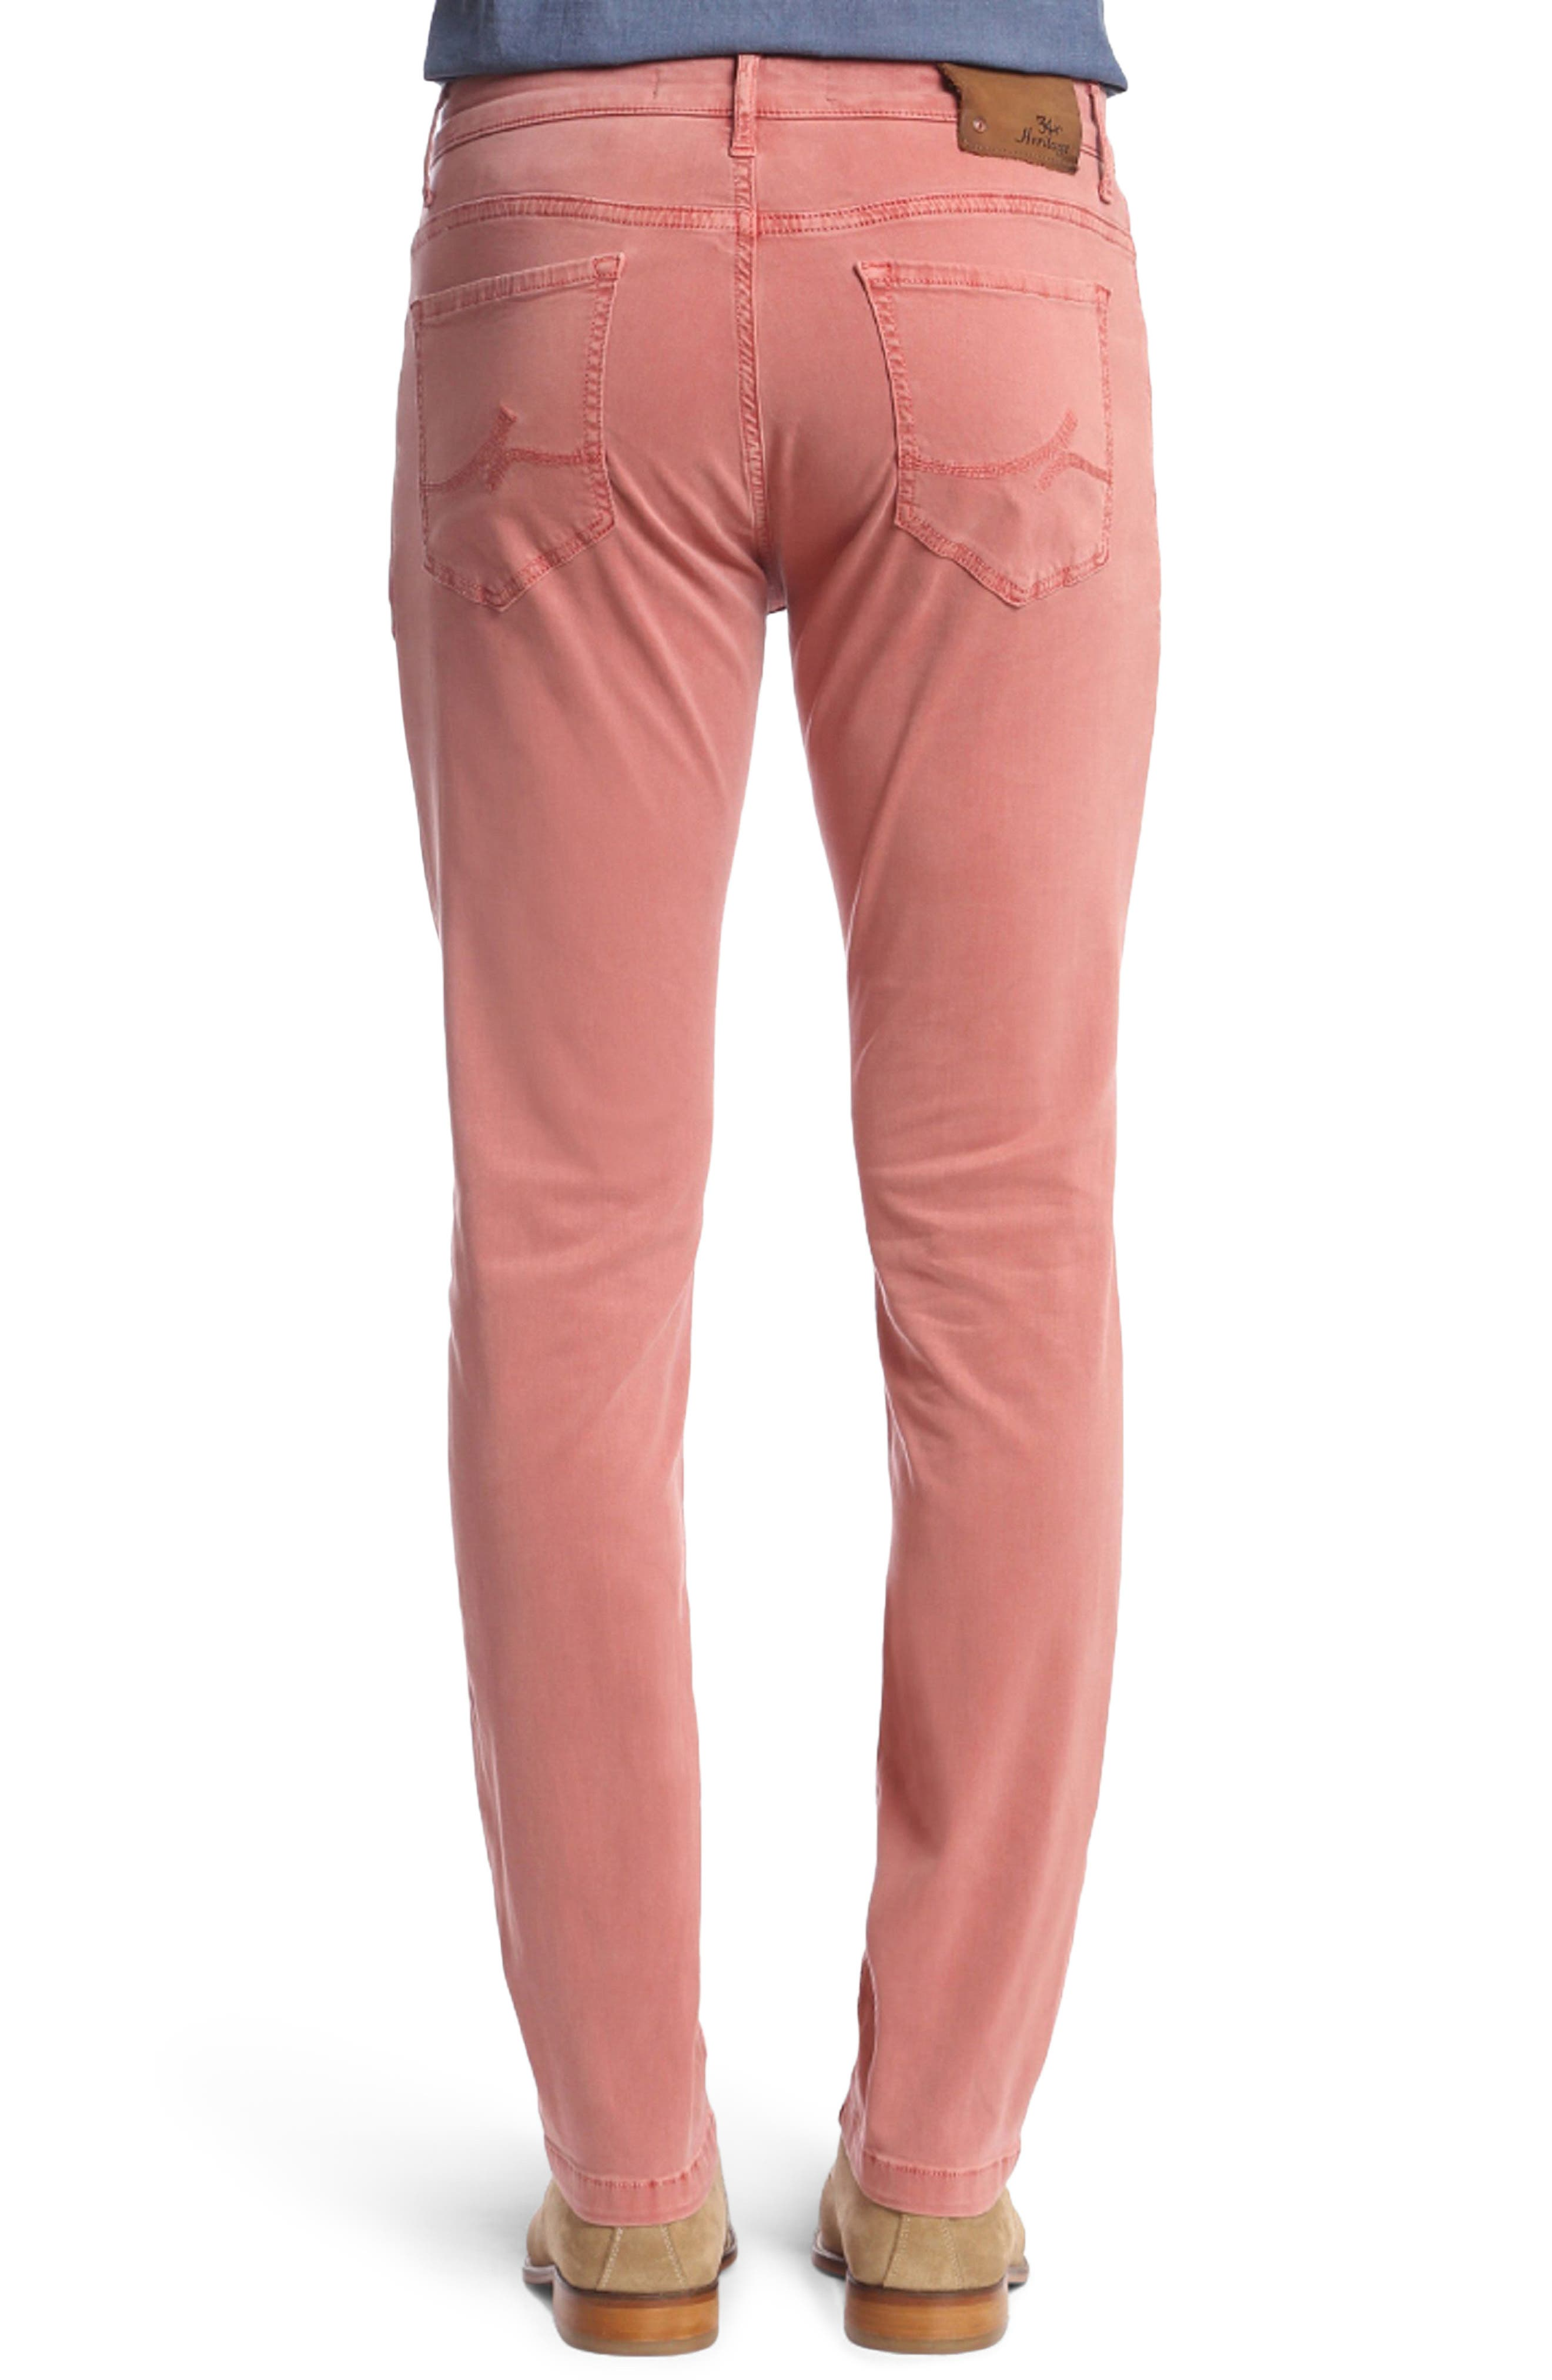 Charisma Relaxed Fit Twill Pants,                             Alternate thumbnail 2, color,                             BRICK TWILL